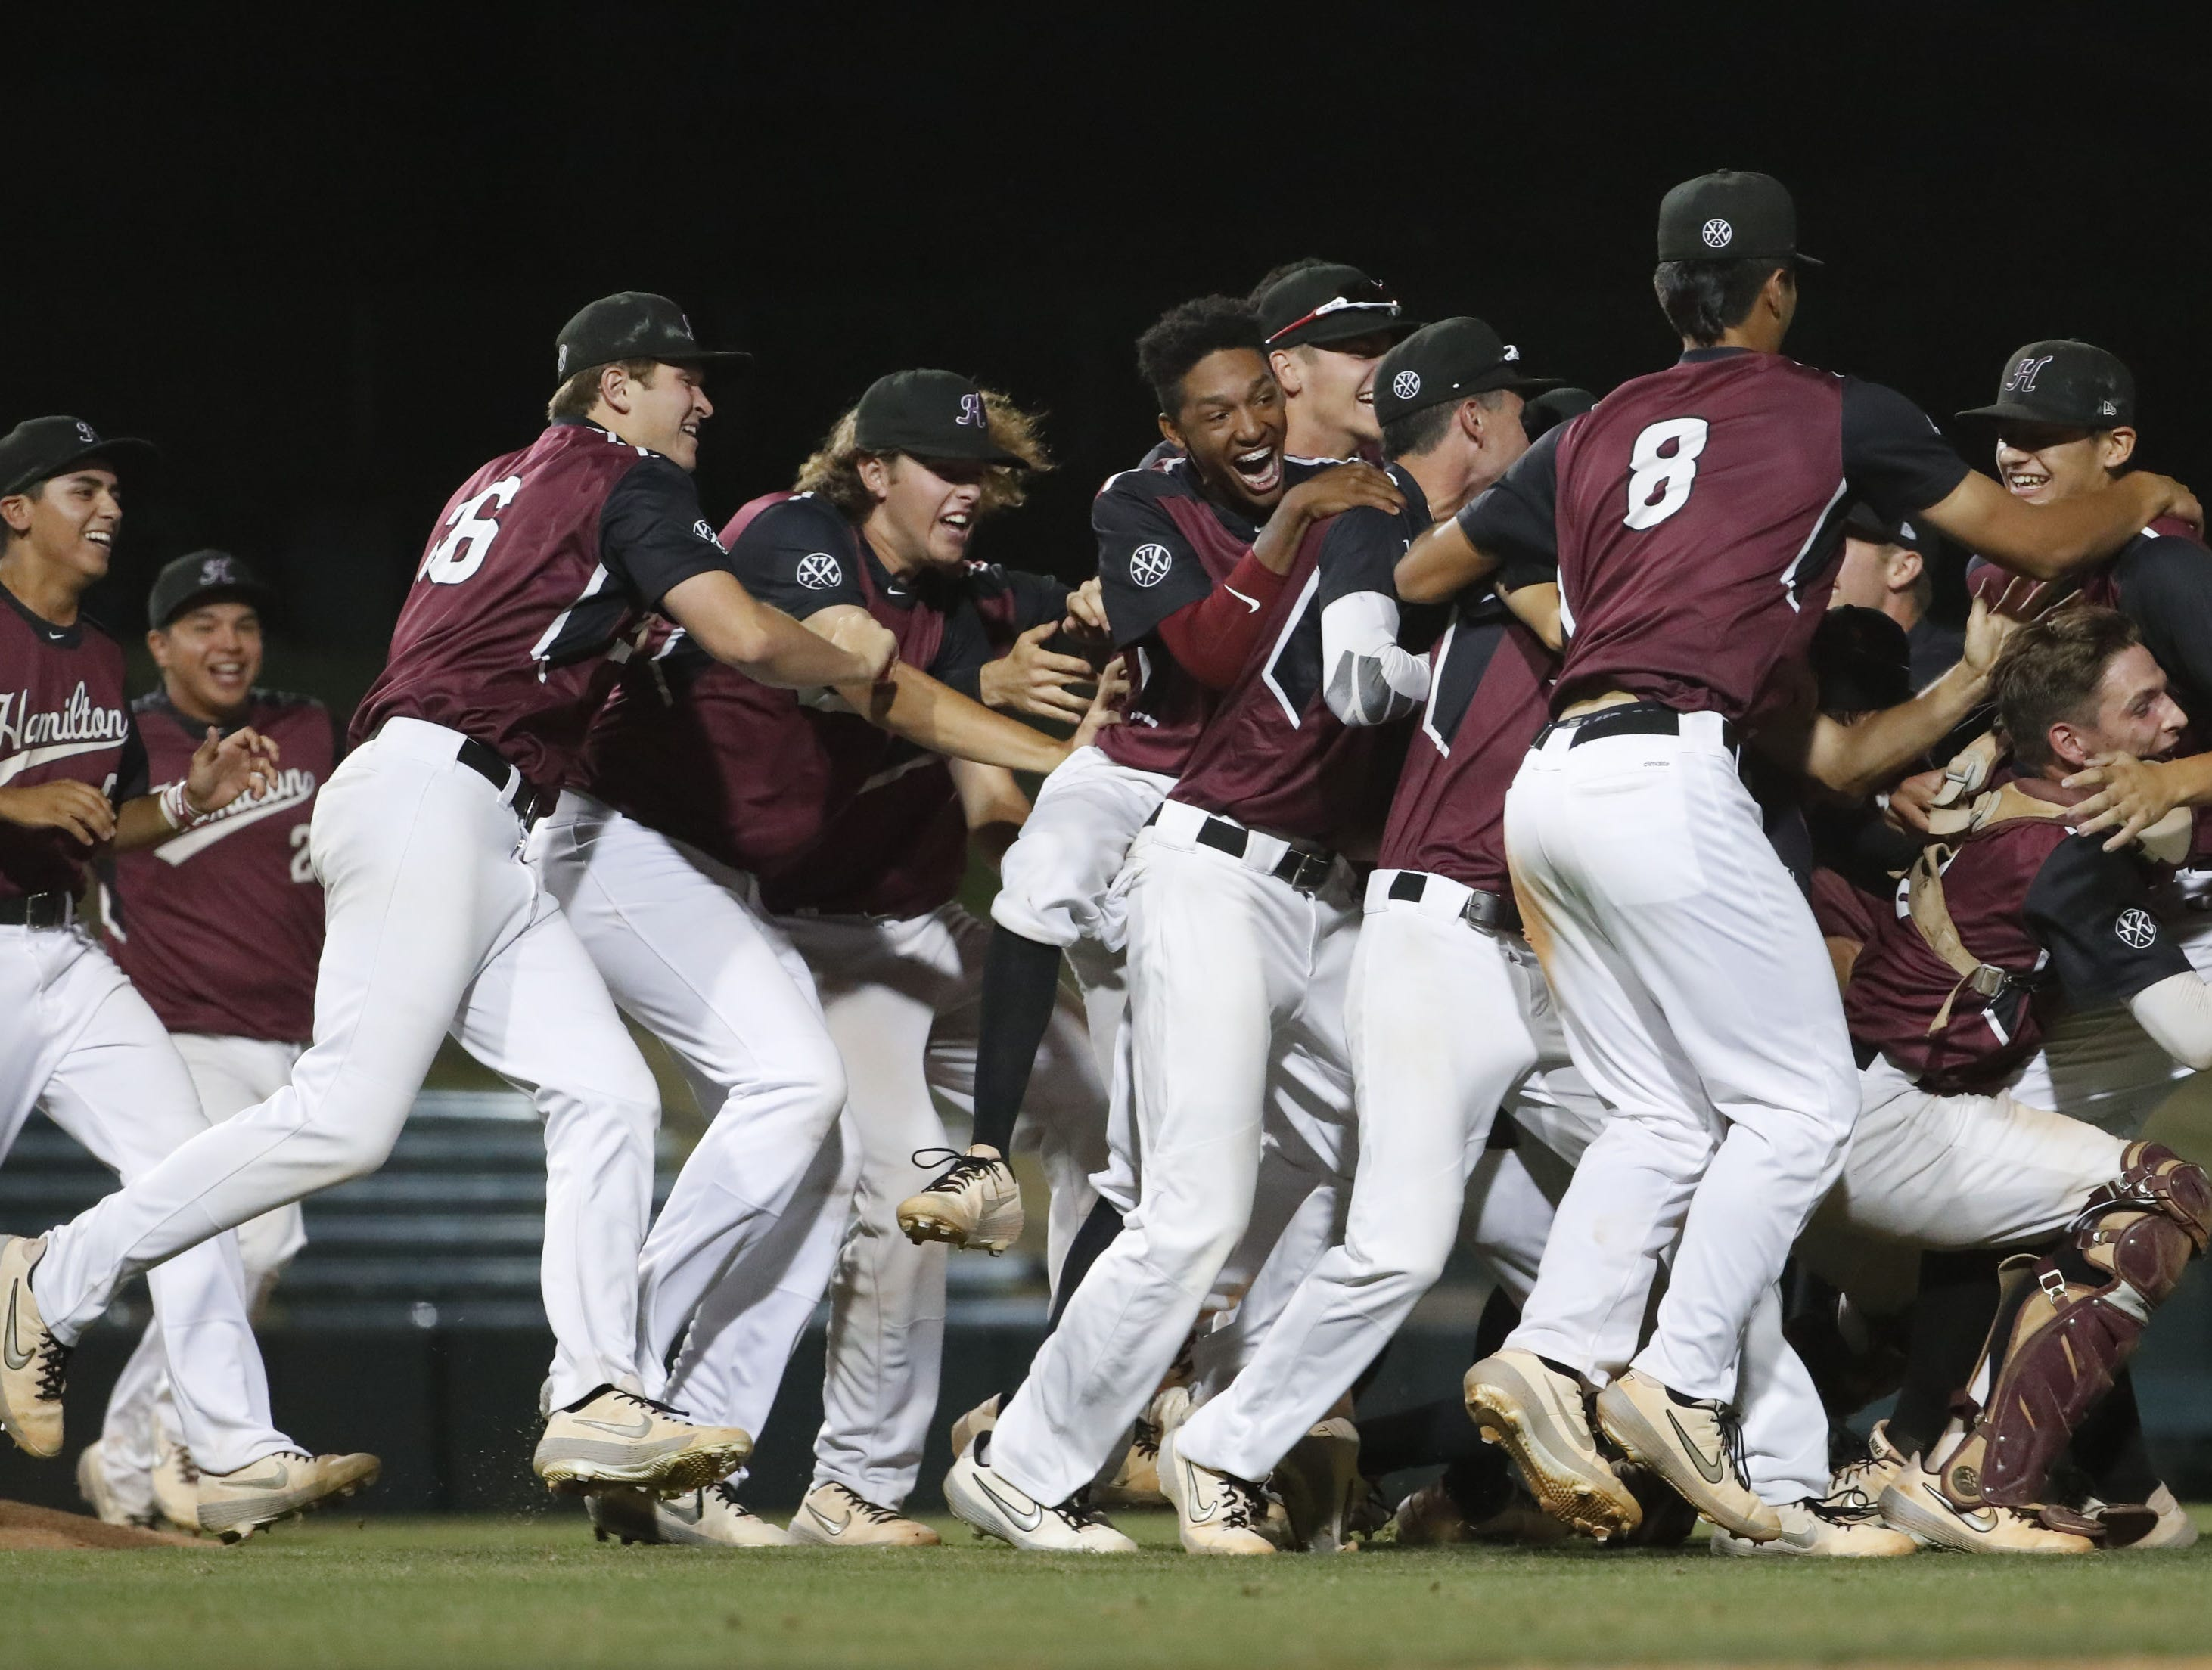 Hamilton players celebrate after beating Corona del Sol 8-1 to win the 6A State Baseball Championship in Tempe, Ariz. May 15, 2019.